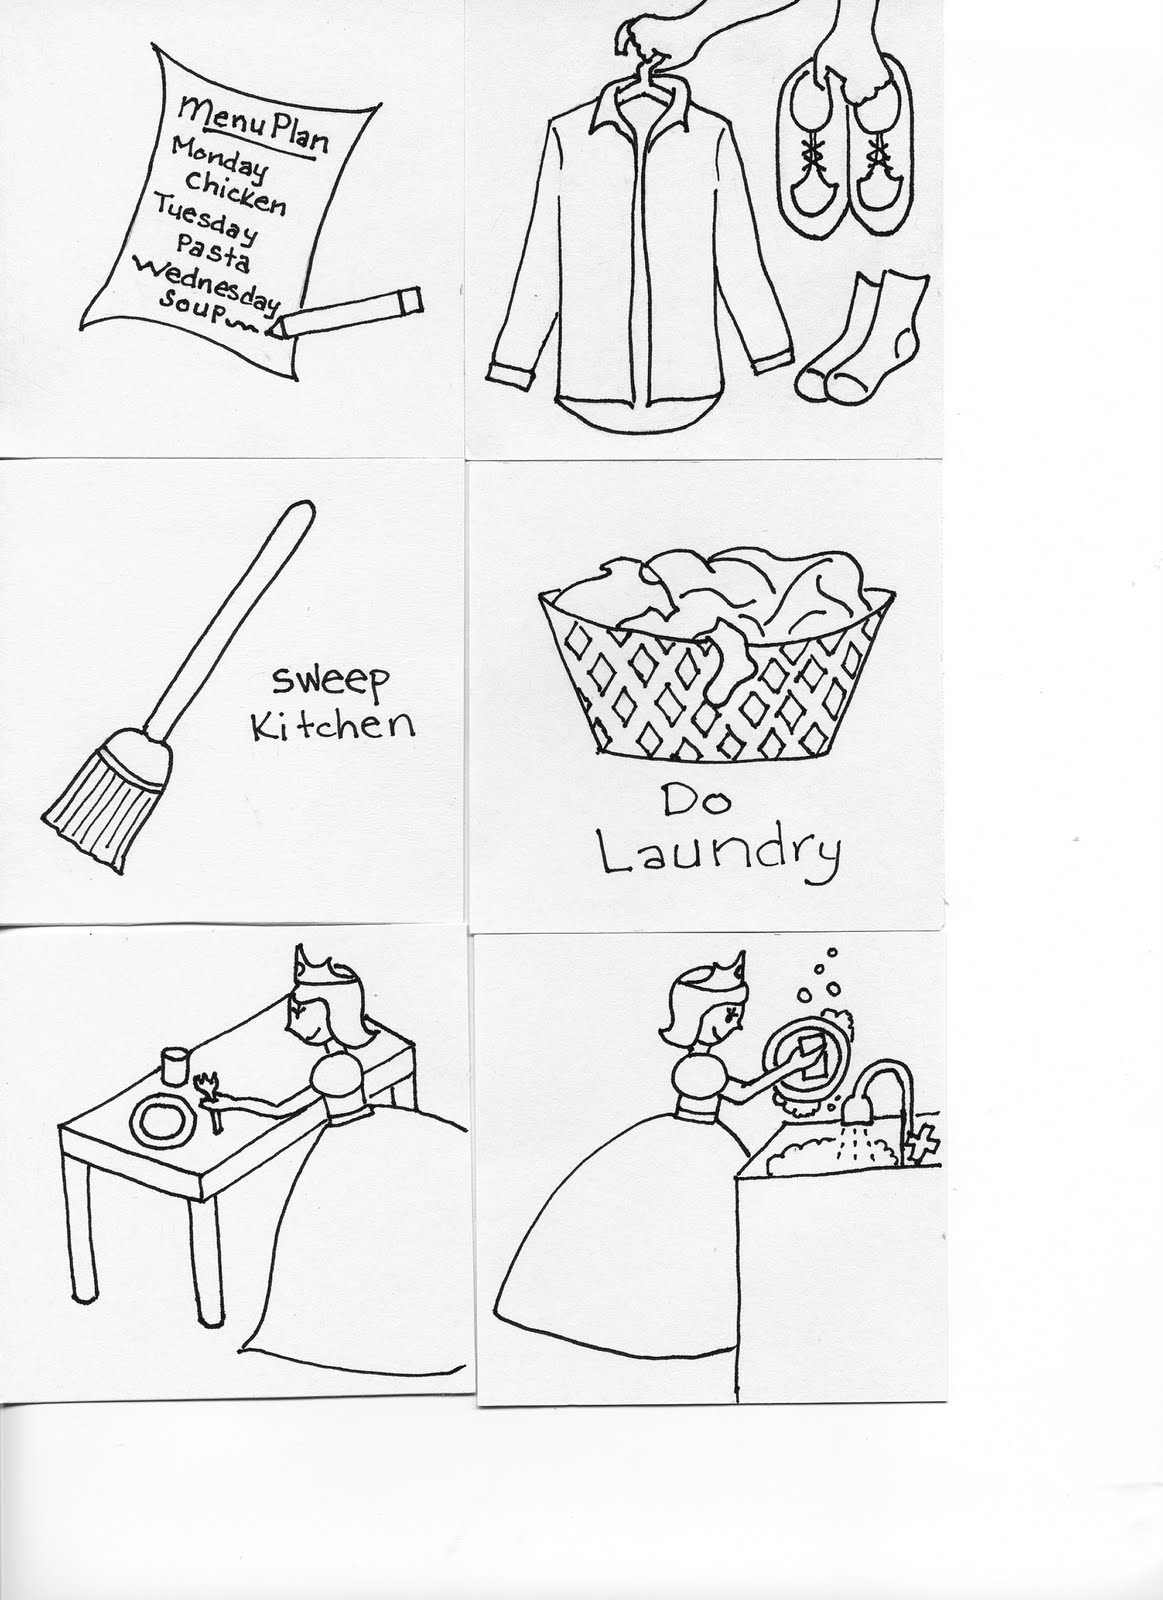 coloring pages kids chores by age | Chore Chart Drawings - The Next Set